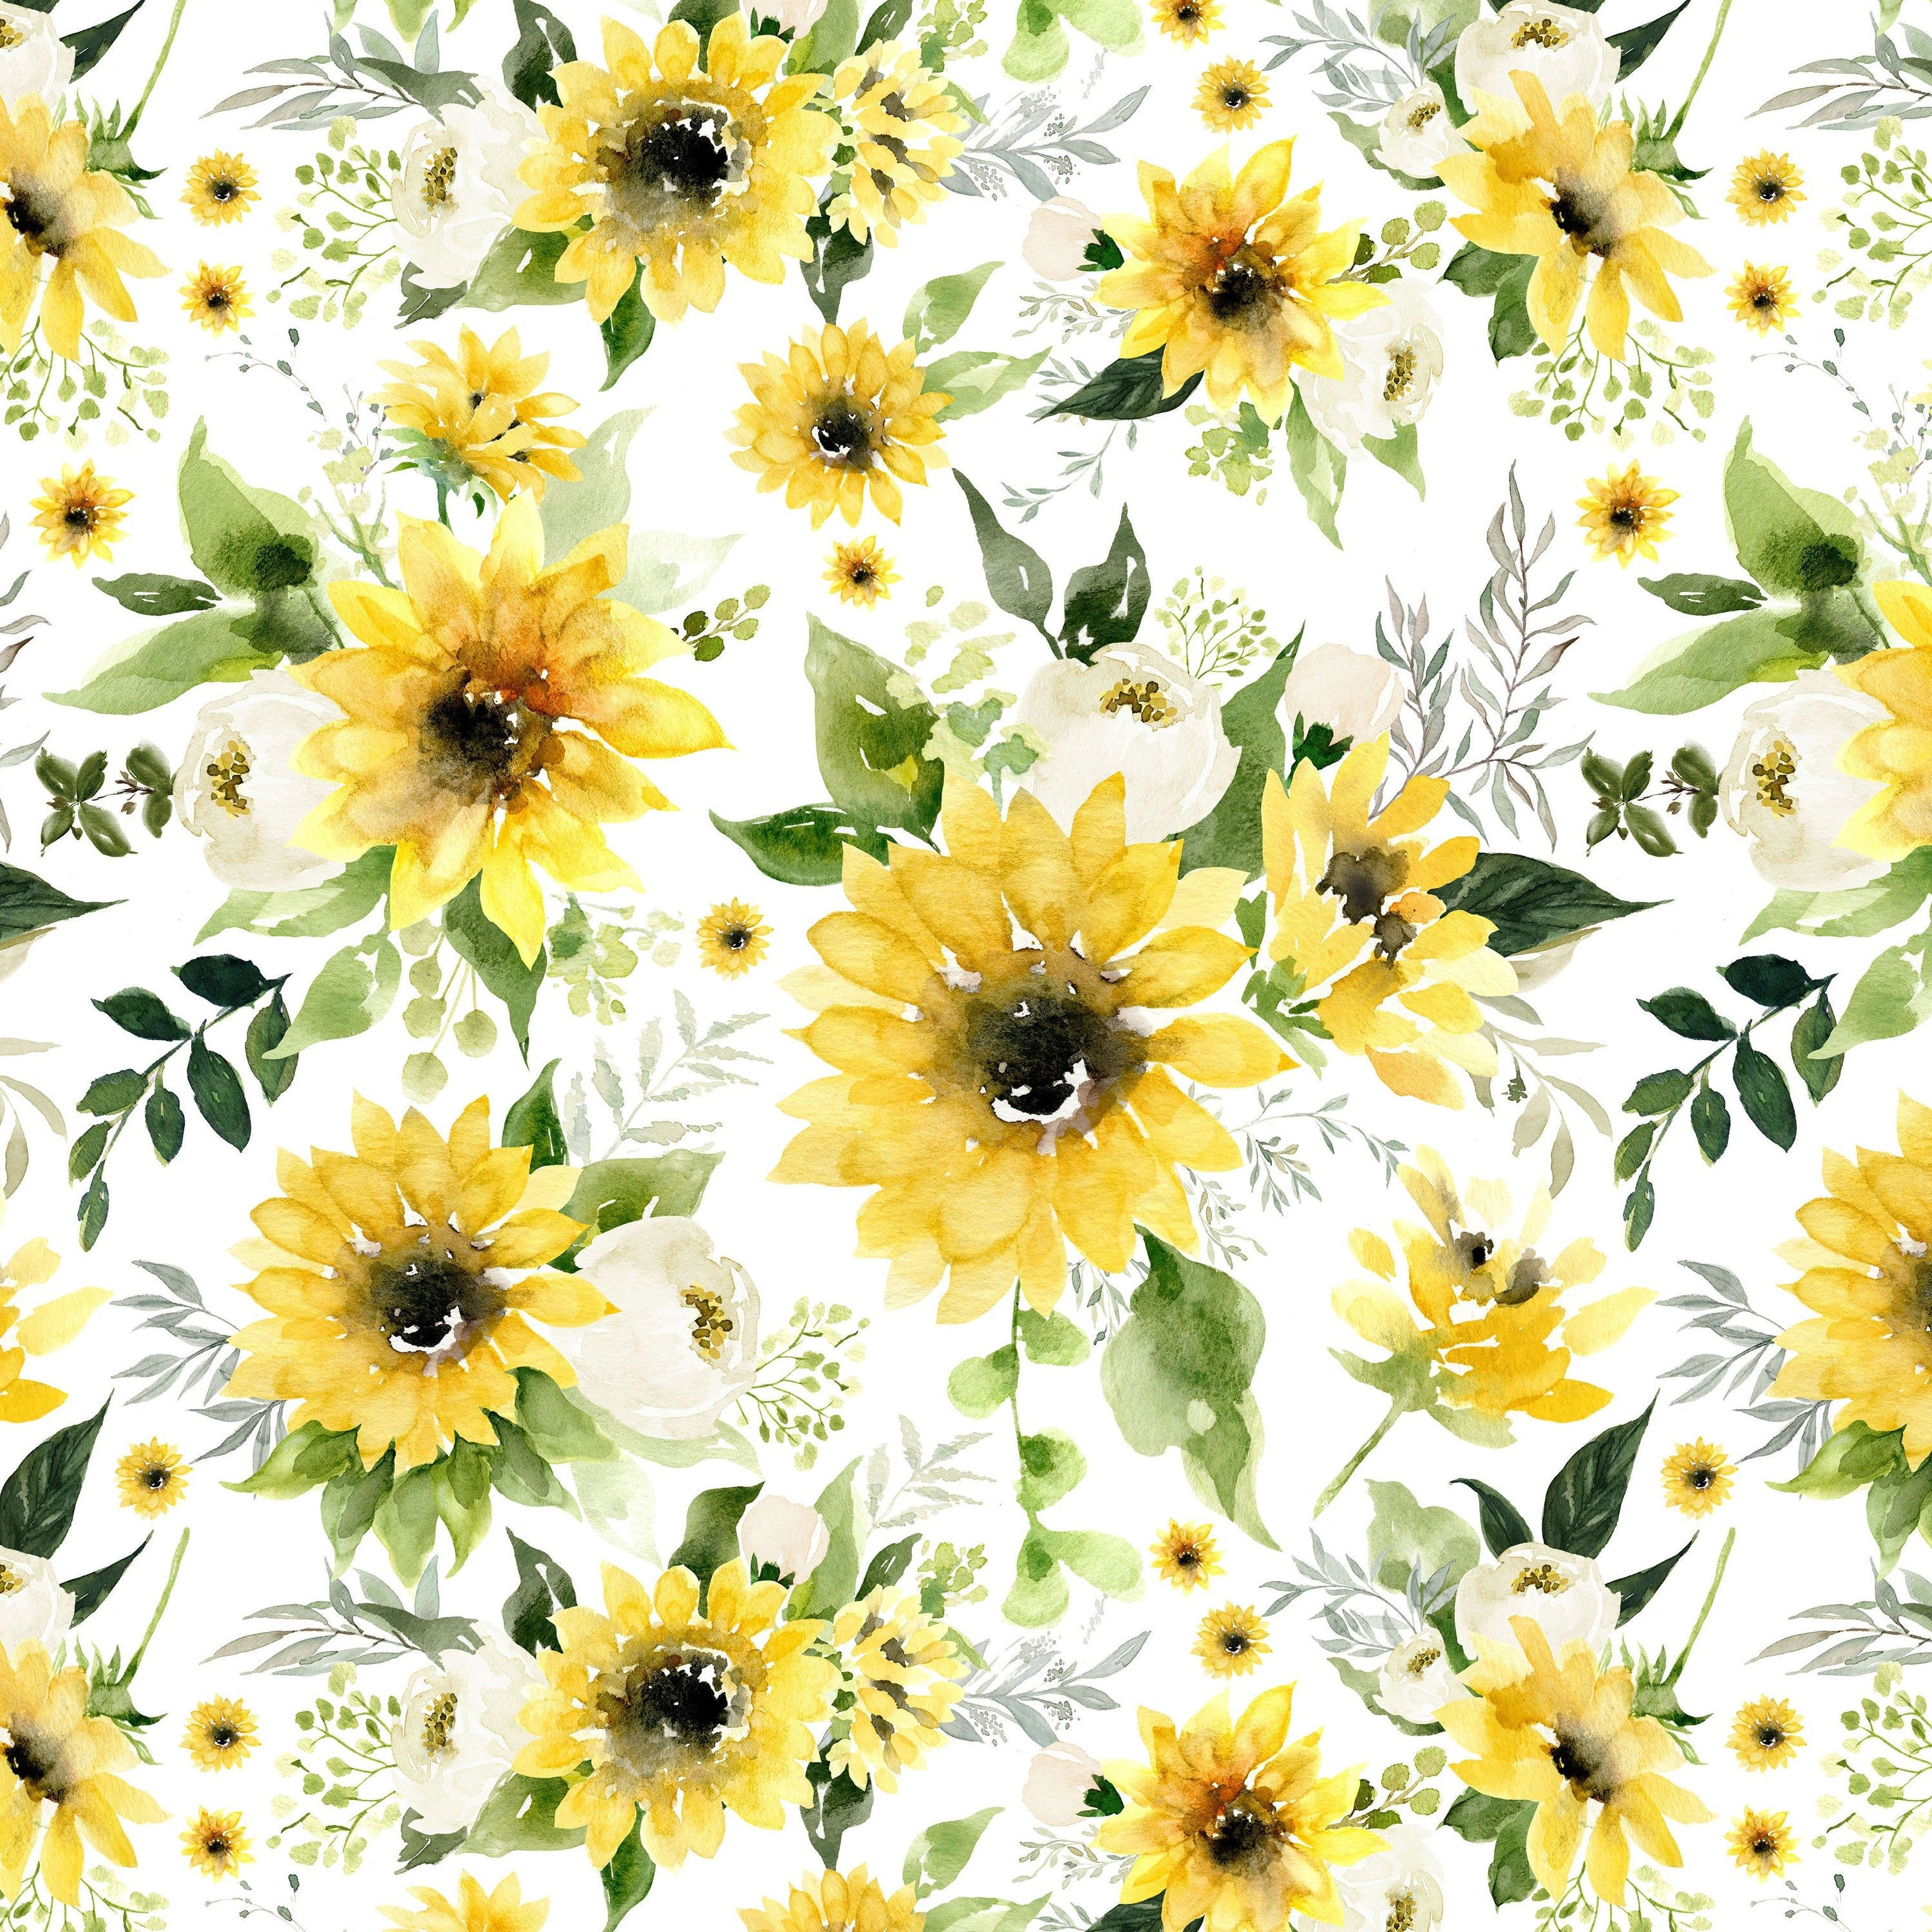 Sunflowers And Roses Fabric By The Yard Quilting Cotton Knit